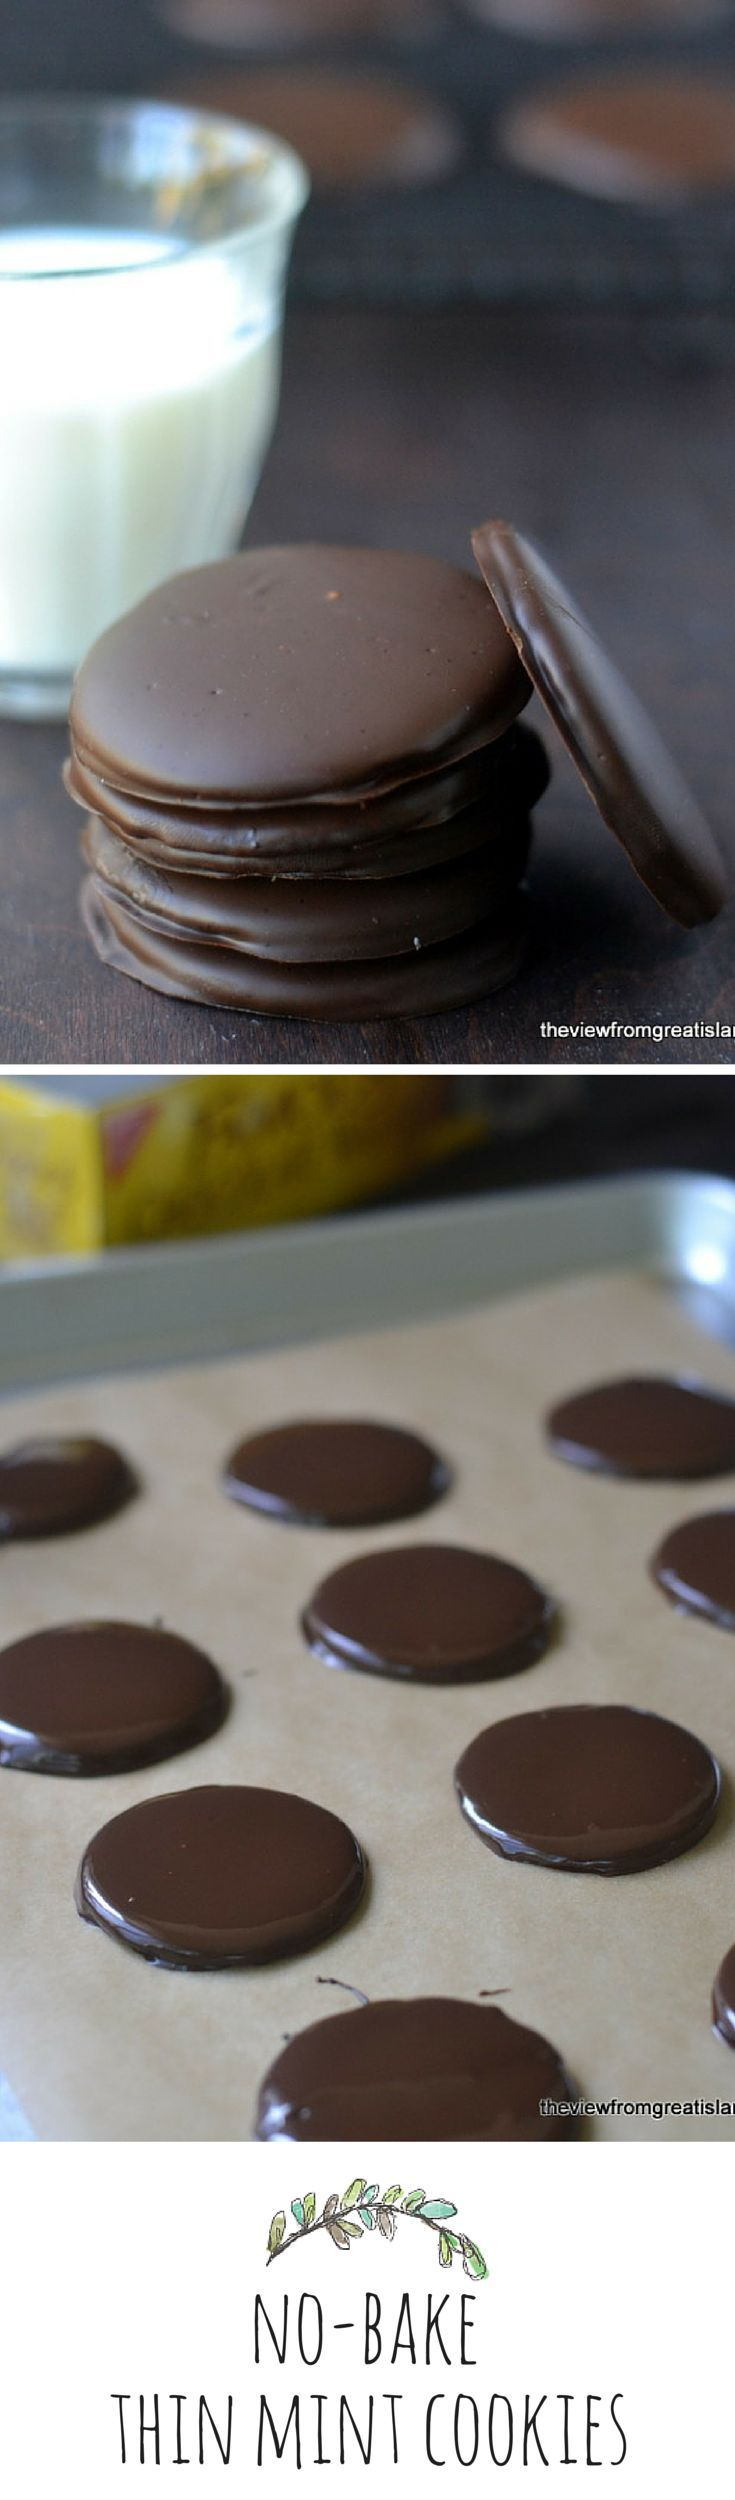 Guaranteed the quickest and easiest way to get your Thin Mint fix!